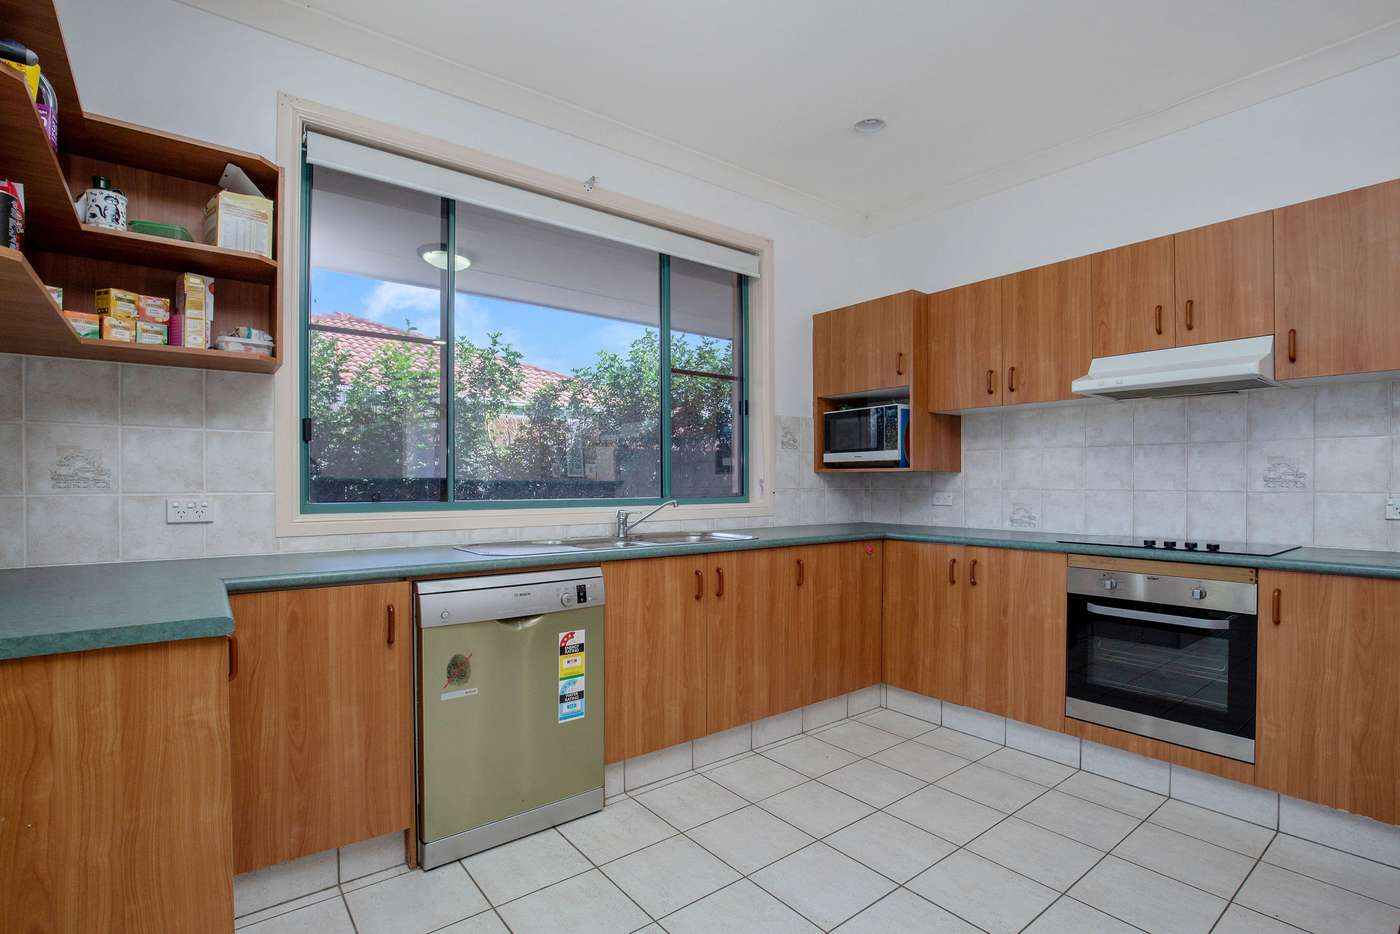 Fifth view of Homely house listing, 84 Dipper Drive, Burleigh Waters QLD 4220